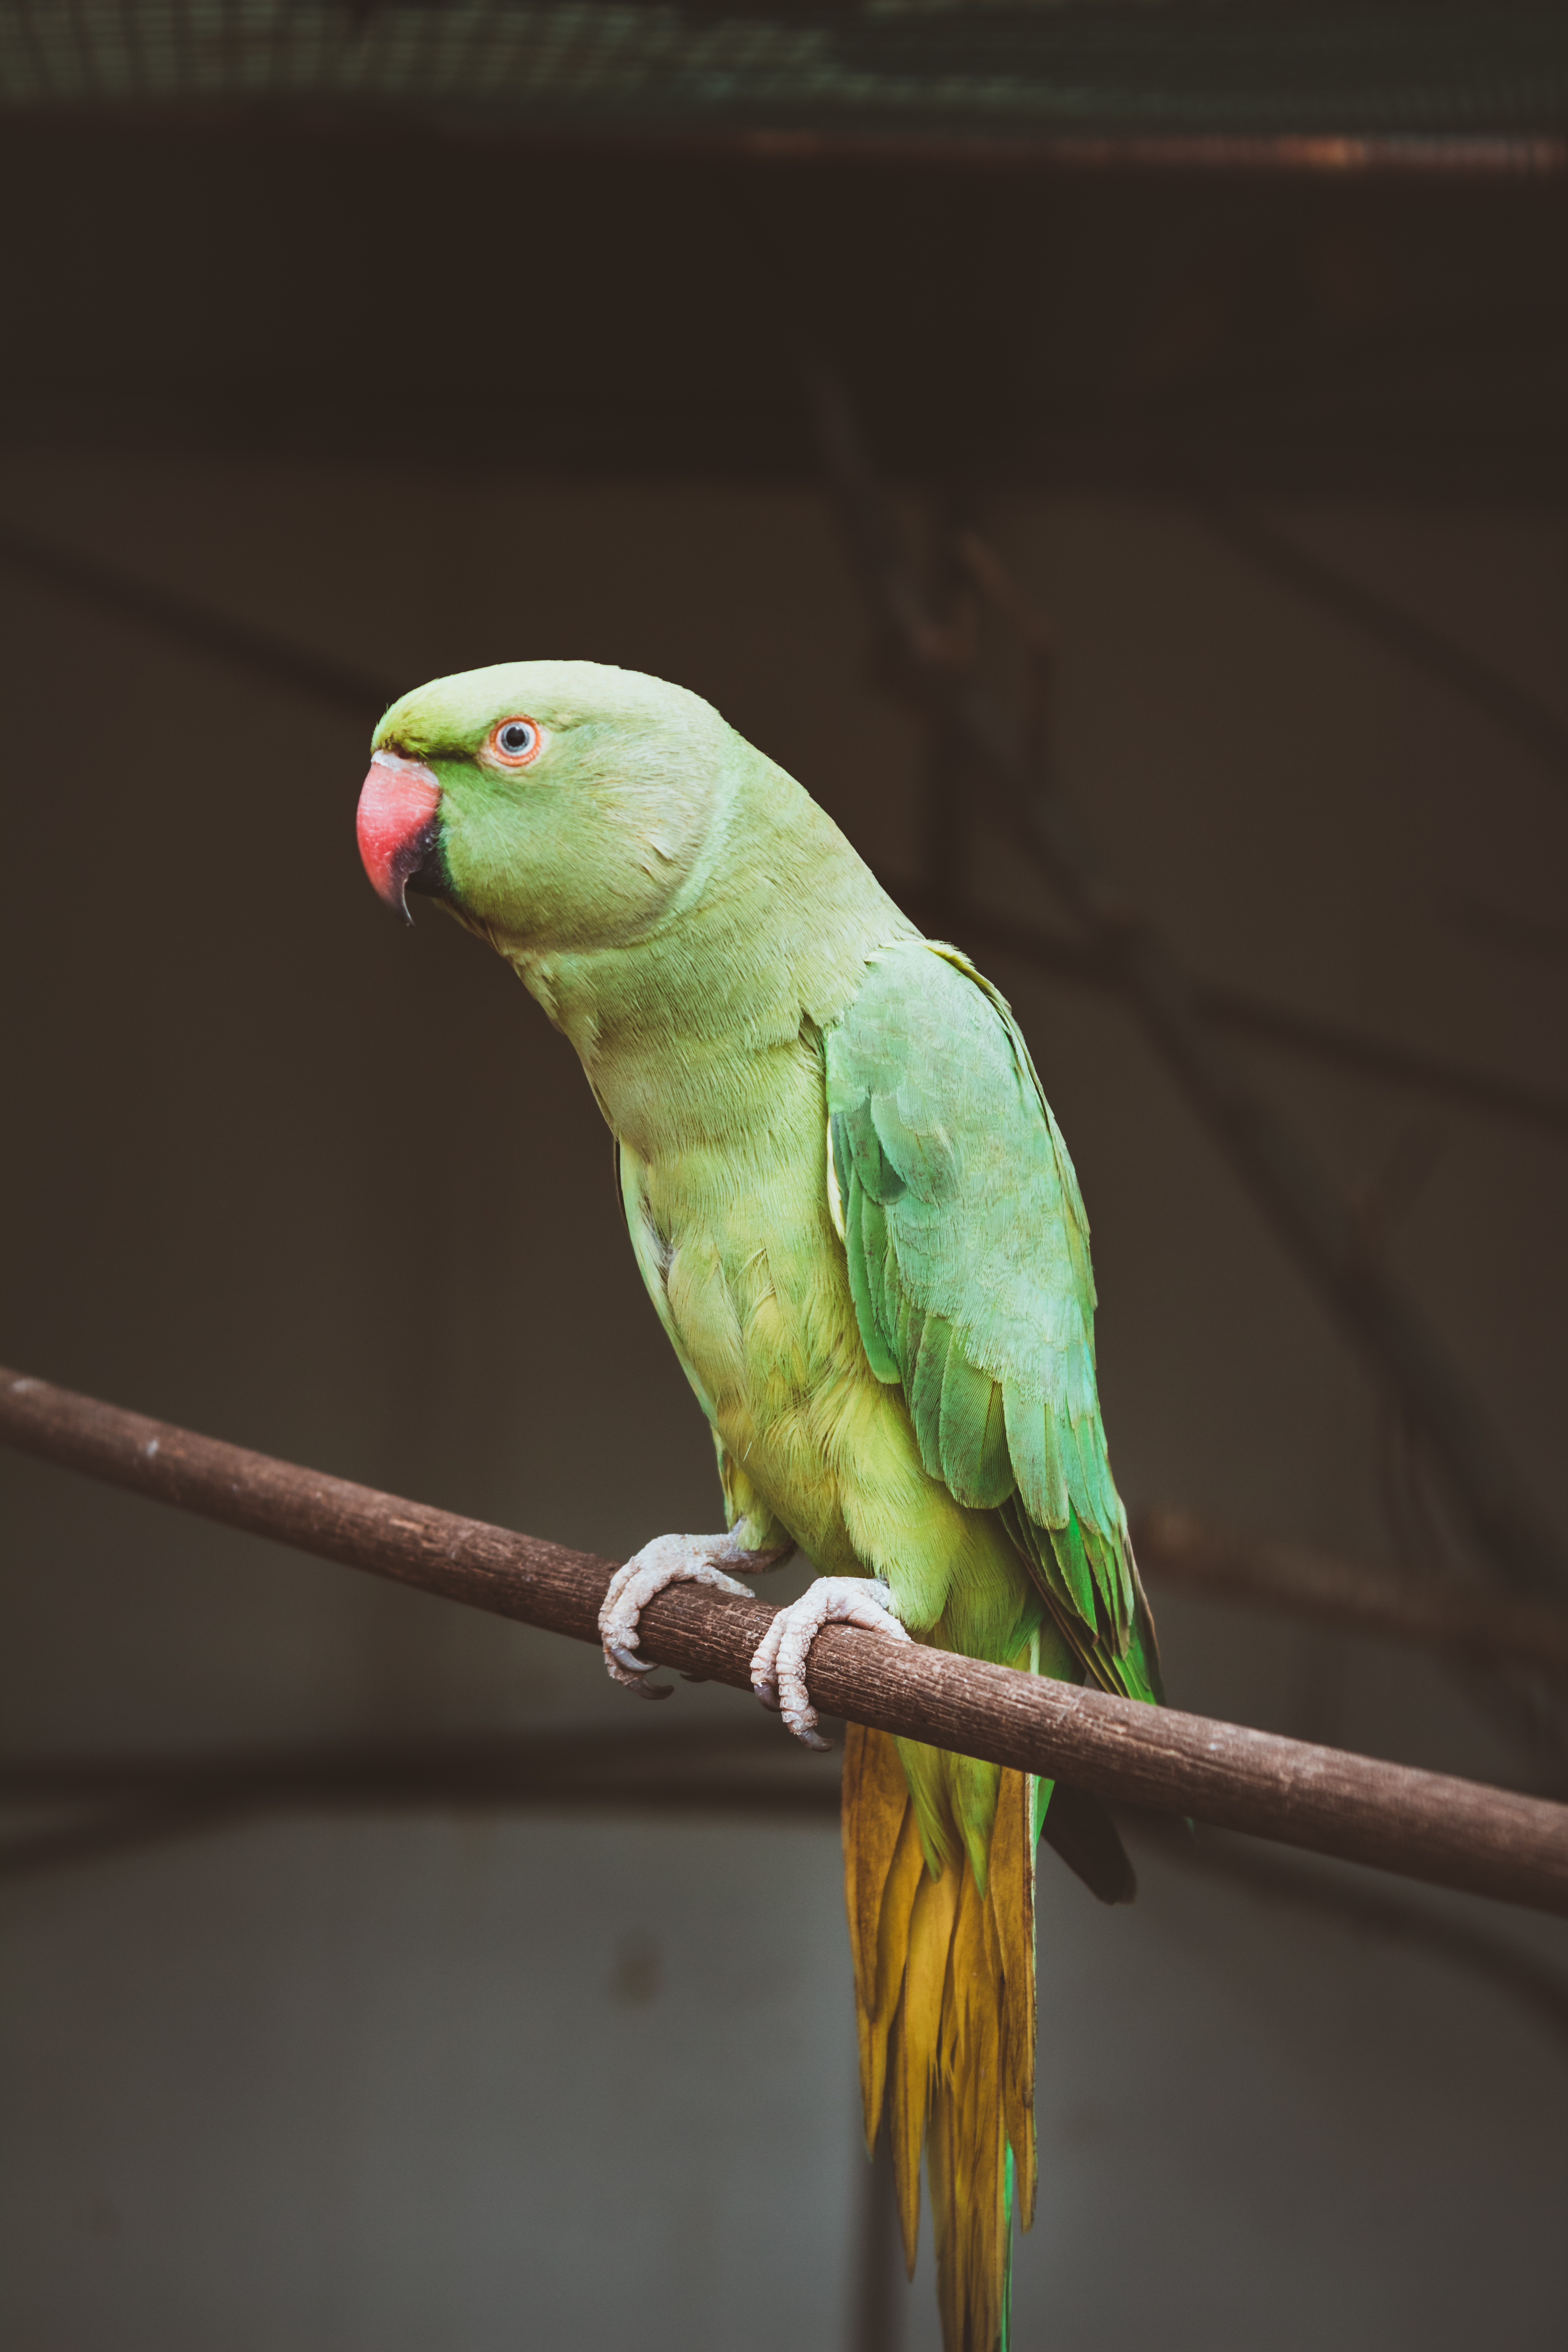 Parot Wallpapers 500 Parrot Pictures Download Free Images On Unsplash